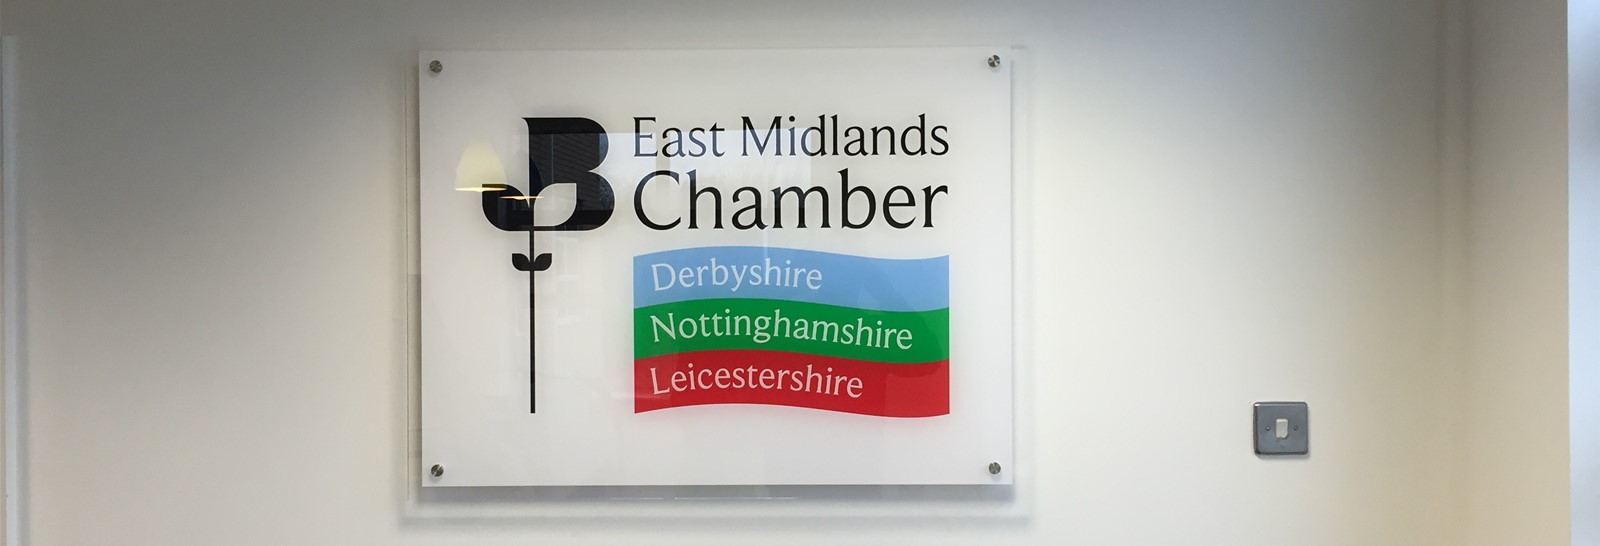 Branding the new building for The East Midlands Chamber of Commerce